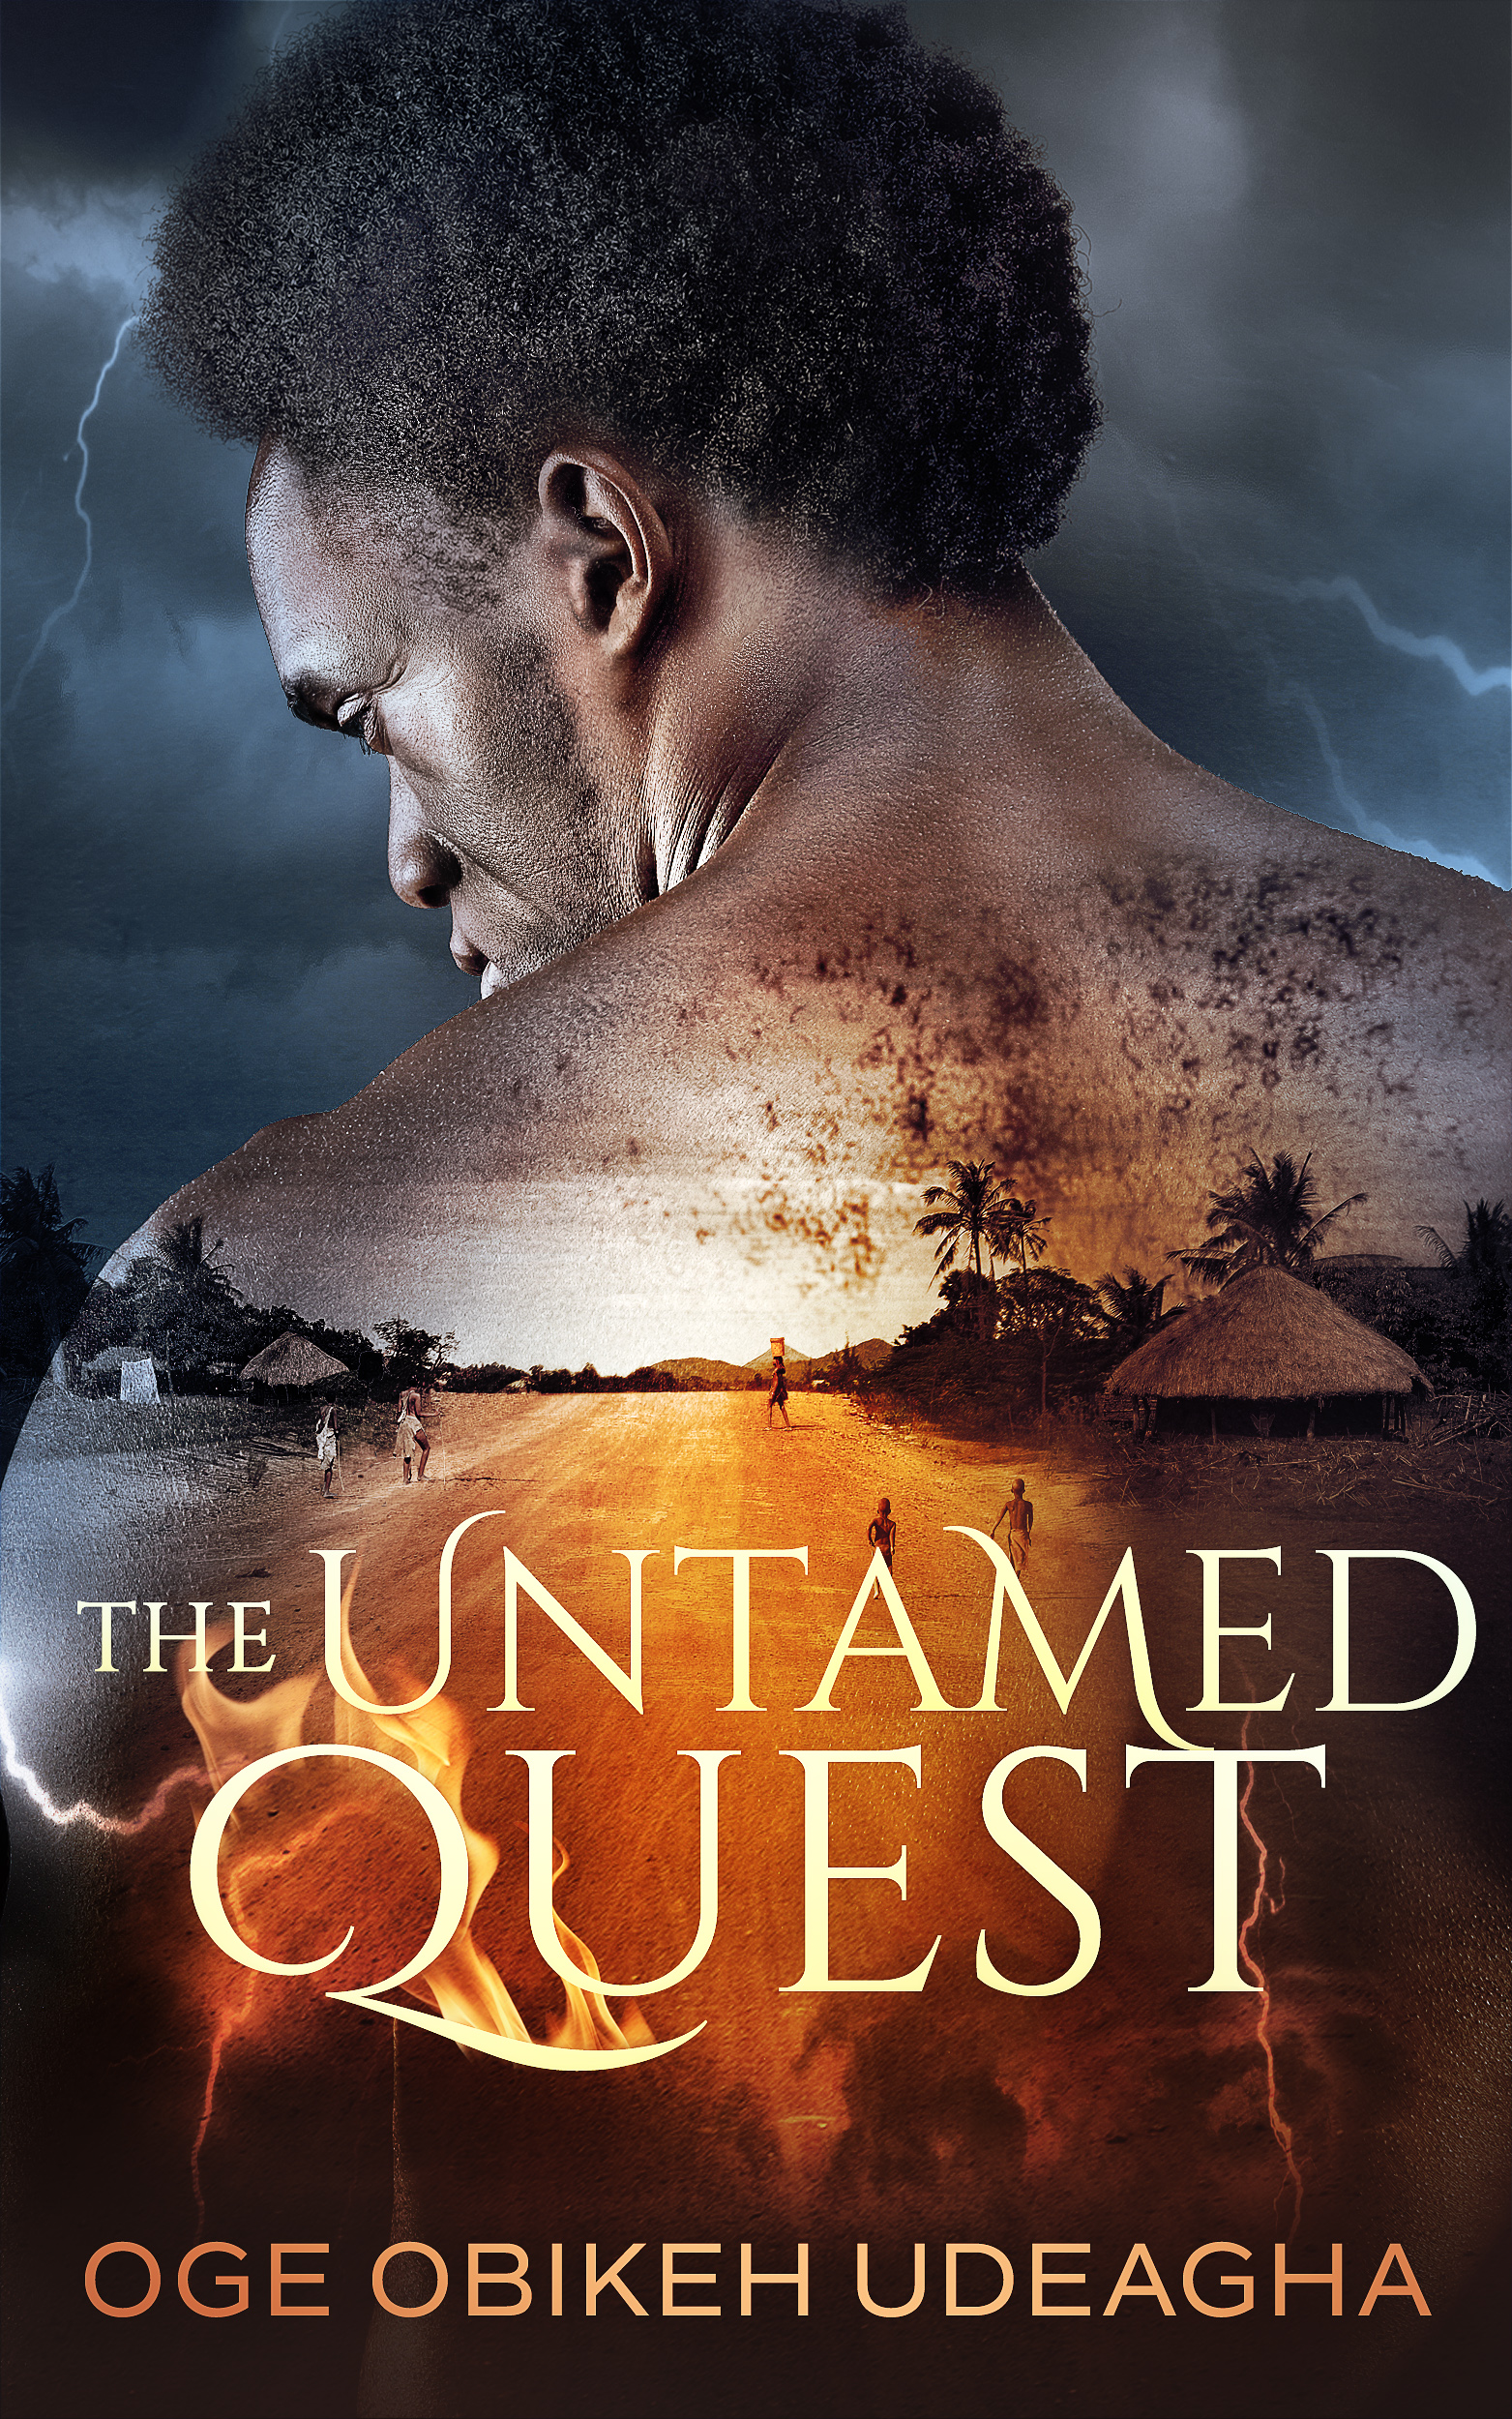 The Untamed Quest